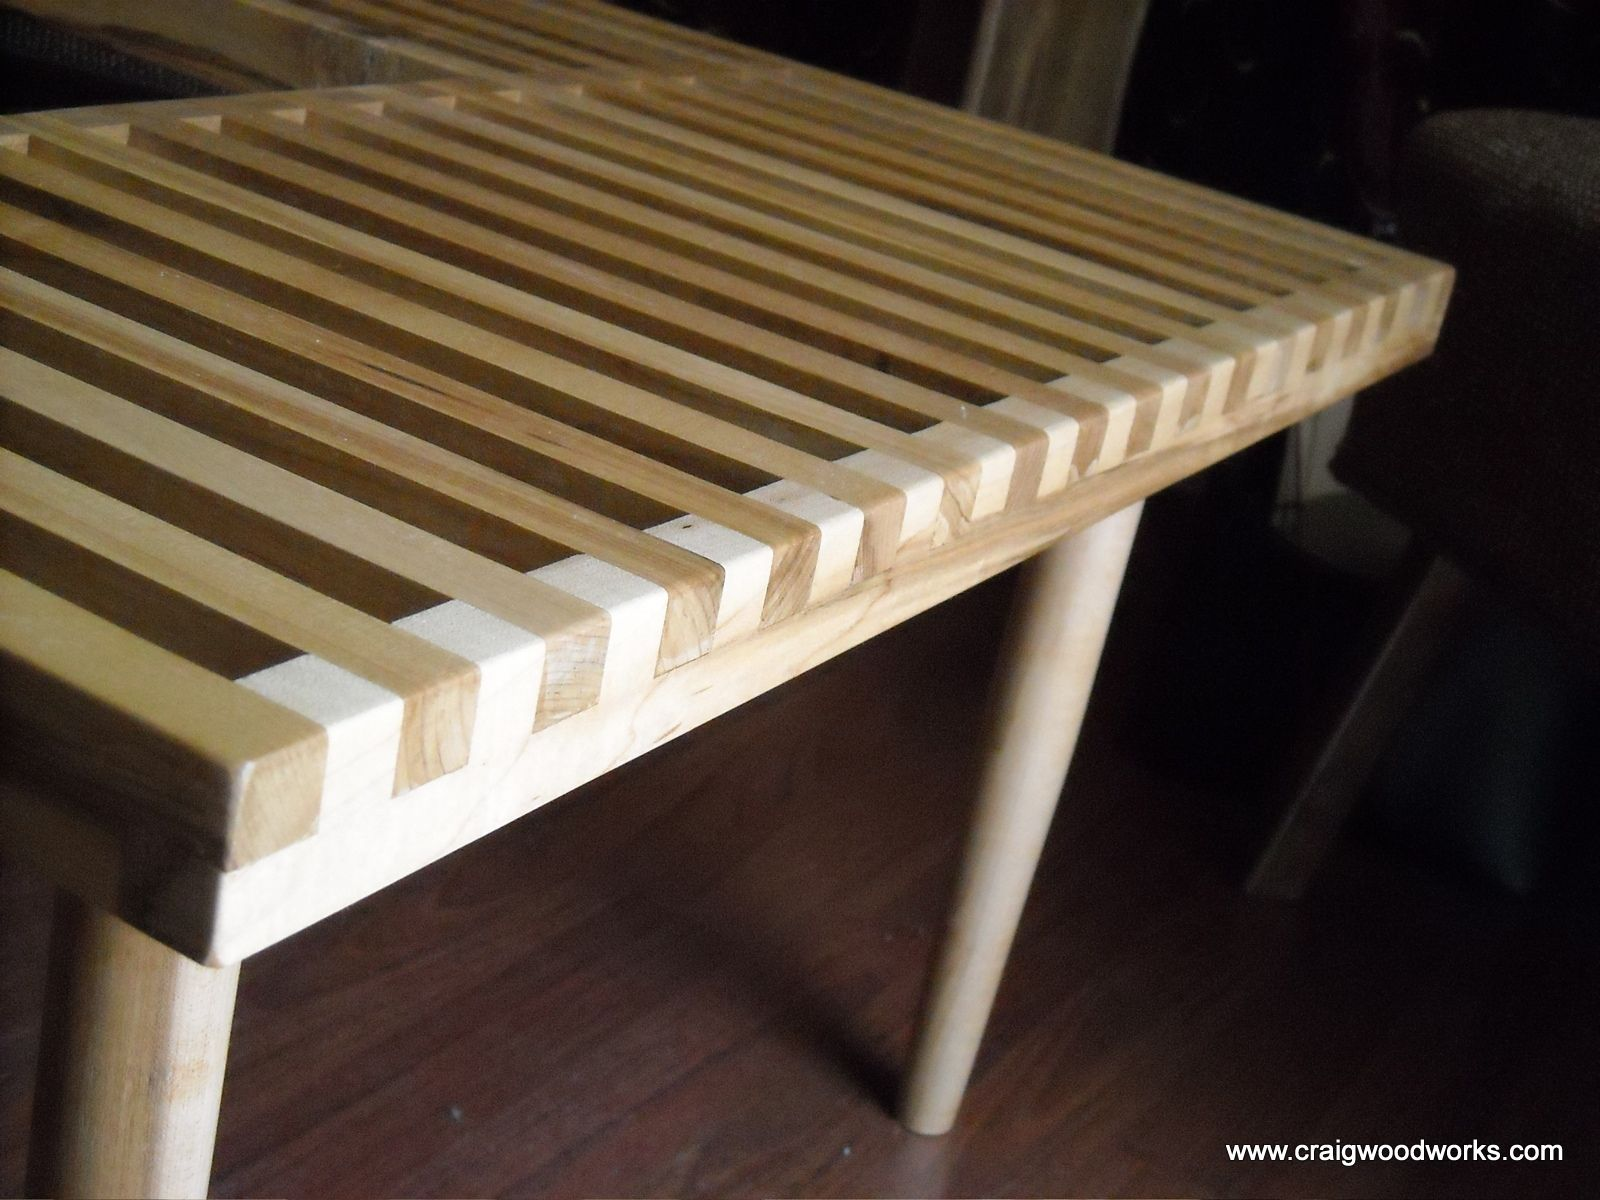 Hand Crafted Of Slat Benches And Slat Tables By